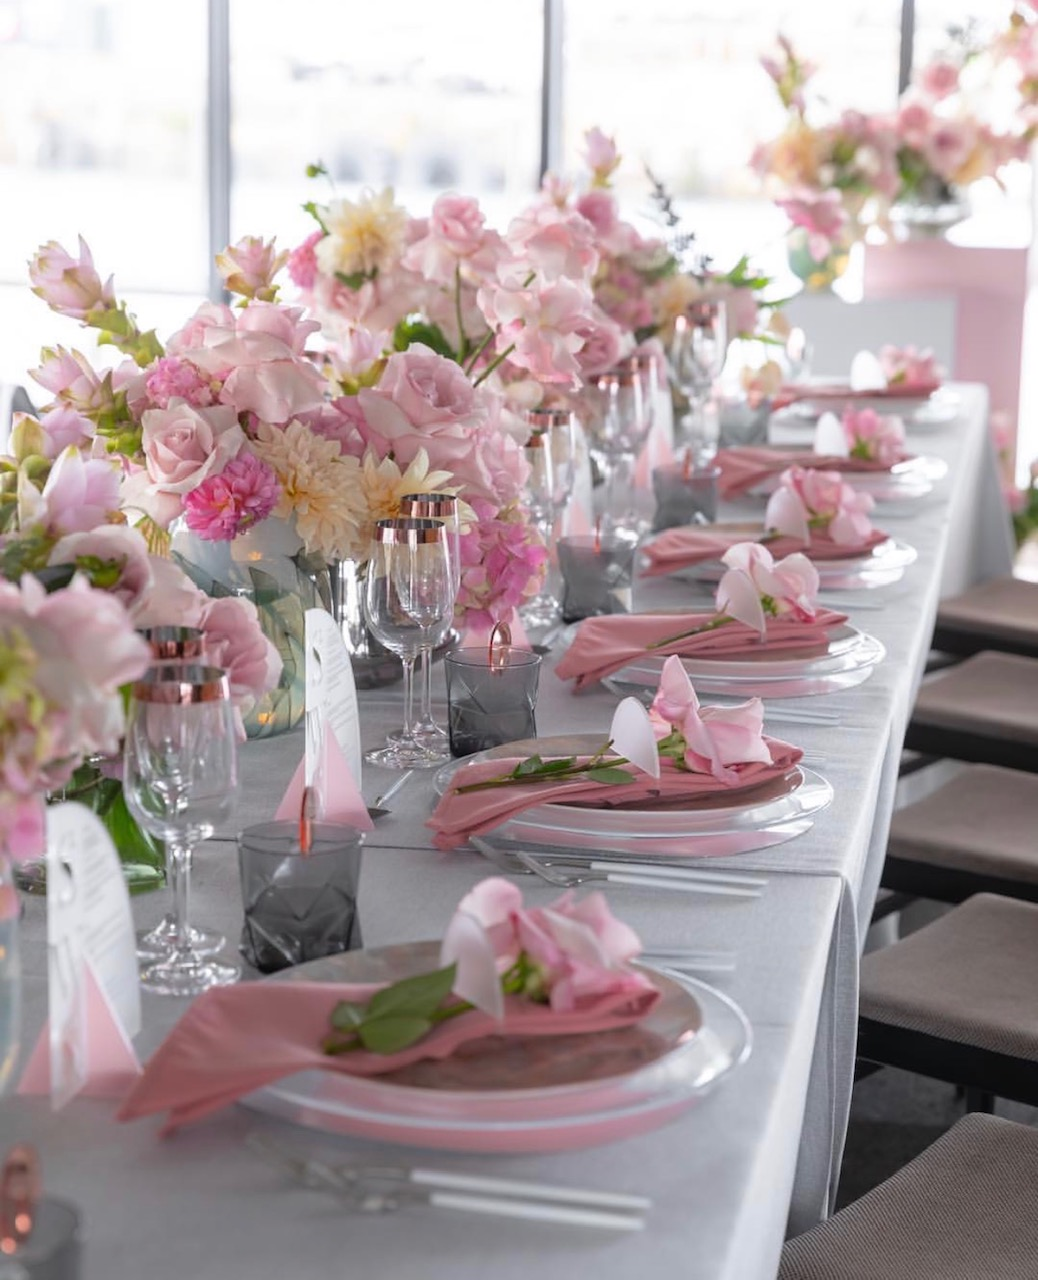 Hire_luxury_linen_sydney_wedding_silver_western_pink_theme_silver_cutley_charger_plates.jpg